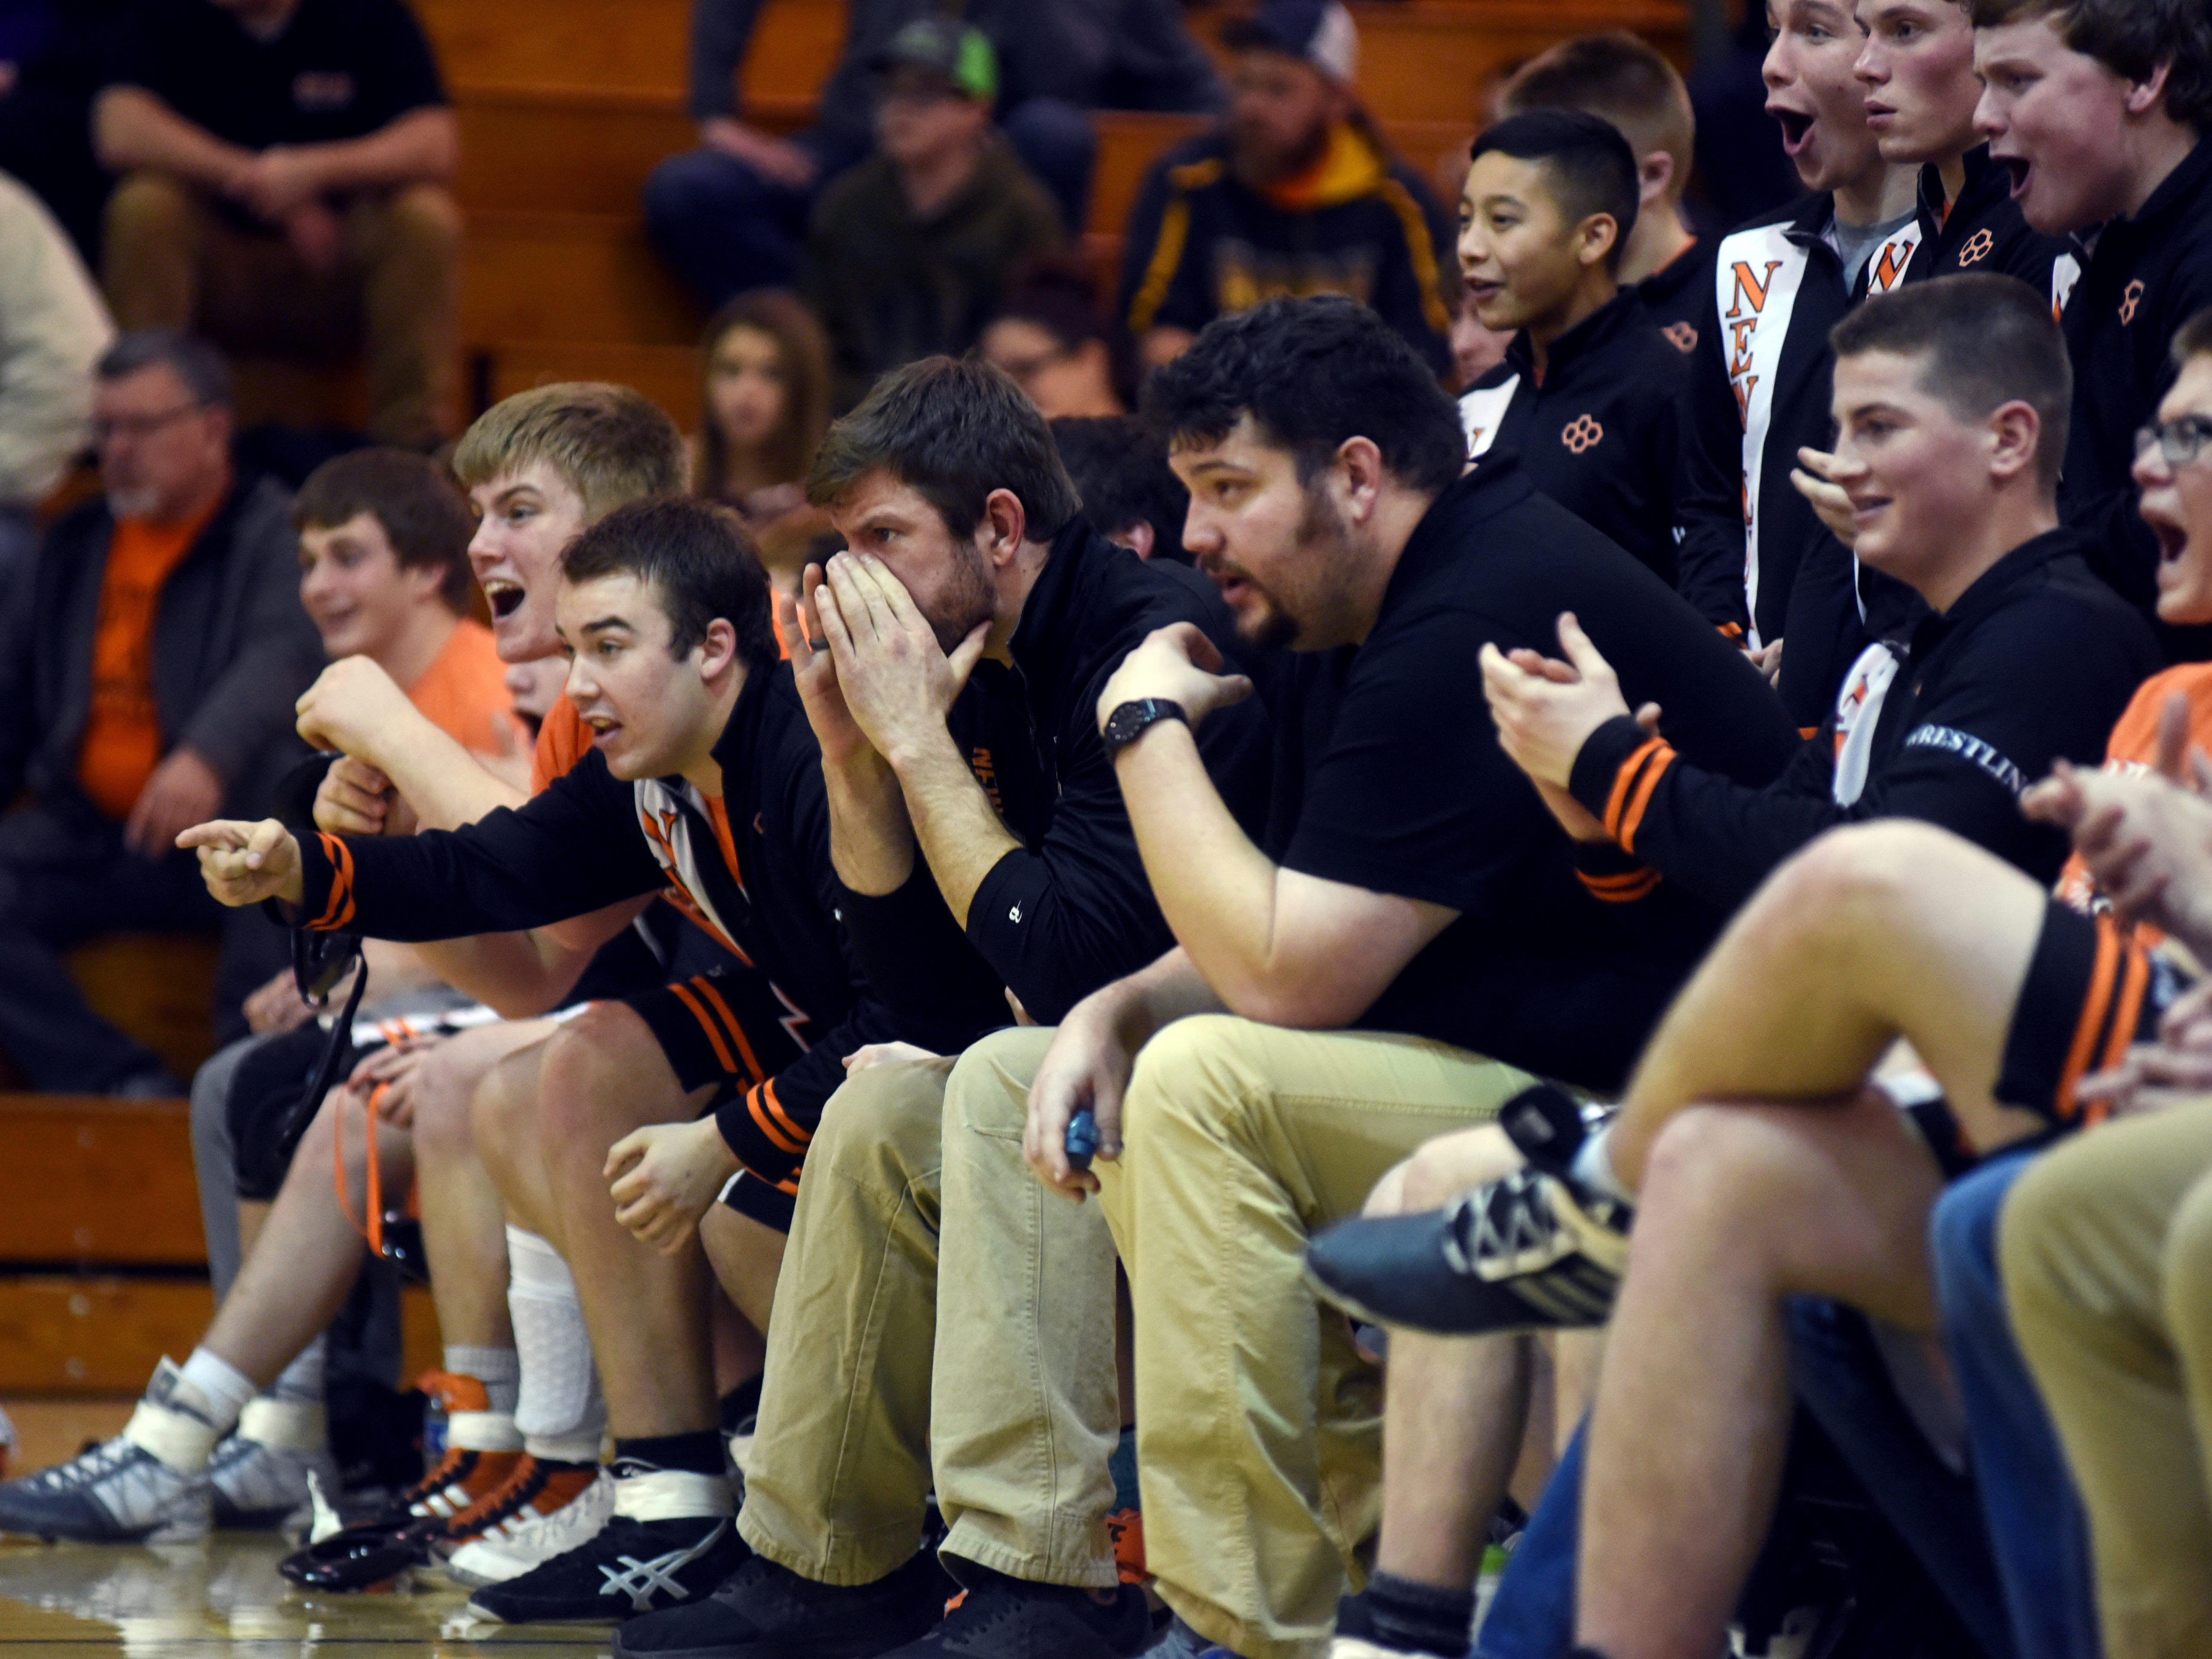 New Lexington coaches and wrestlers watch the action against Tri-Valley.